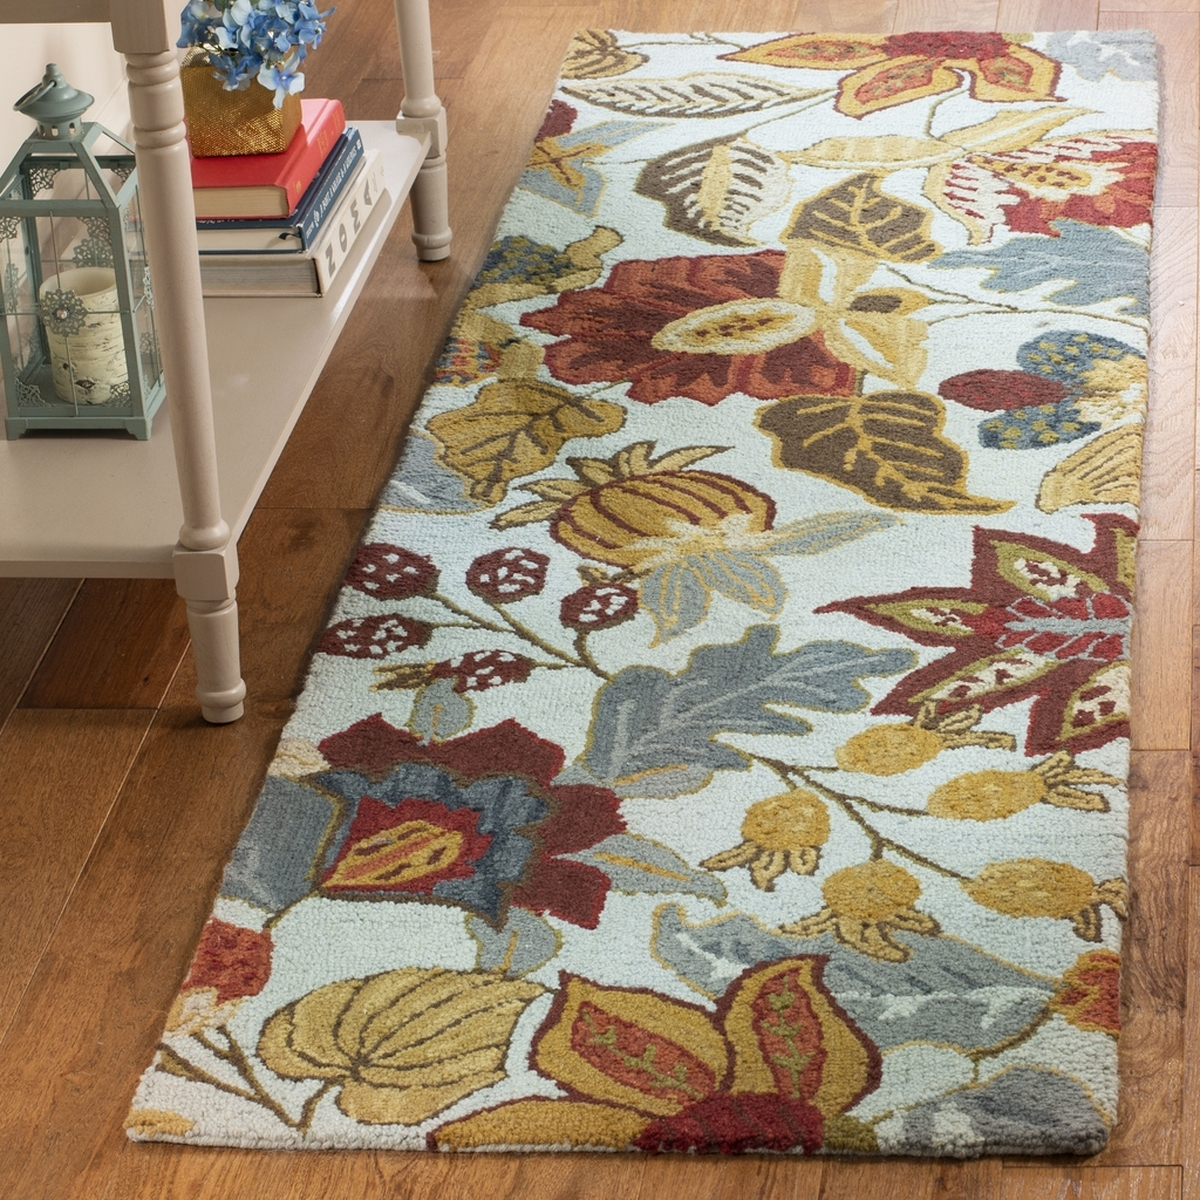 Rug Blm863a Blossom Area Rugs By Safavieh